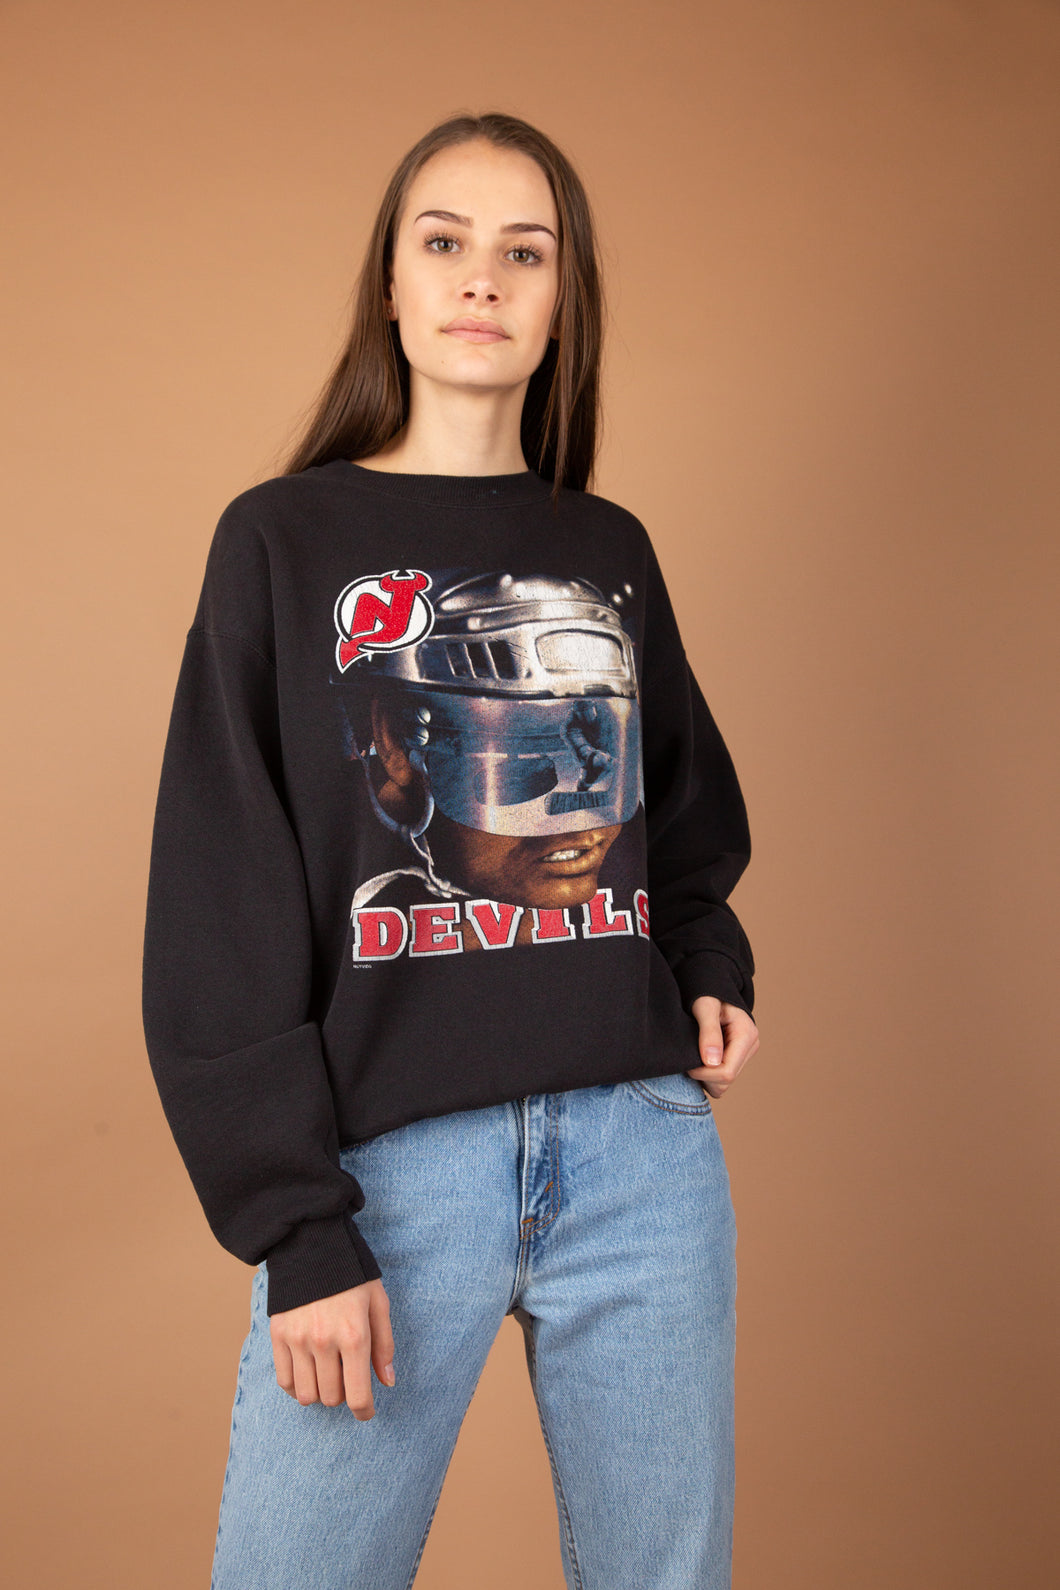 This NHL Devils Sweater is faded black in colour with a futuristic print of a man in a helmet, reflecting an ice hockey player. Branded Devils with the logo above, this is a hella cool sweater.